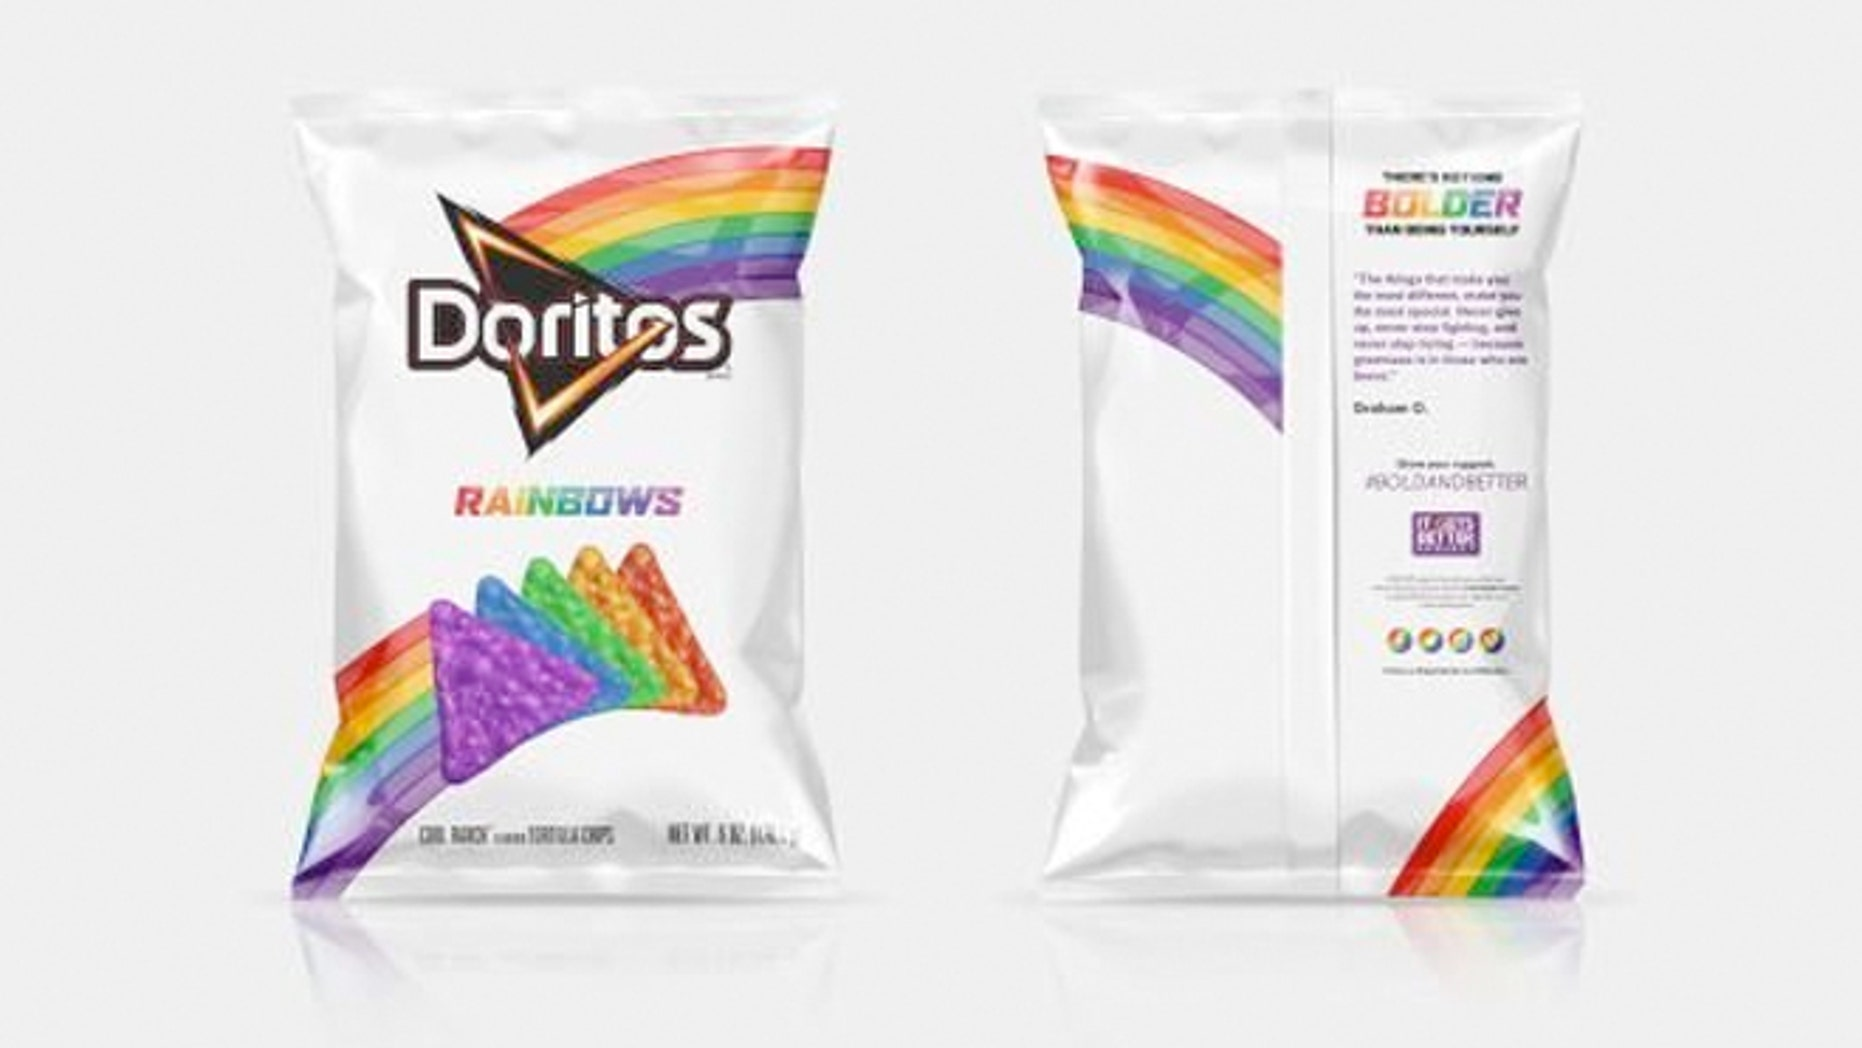 The Rainbow Doritos will only be available for a limited time.